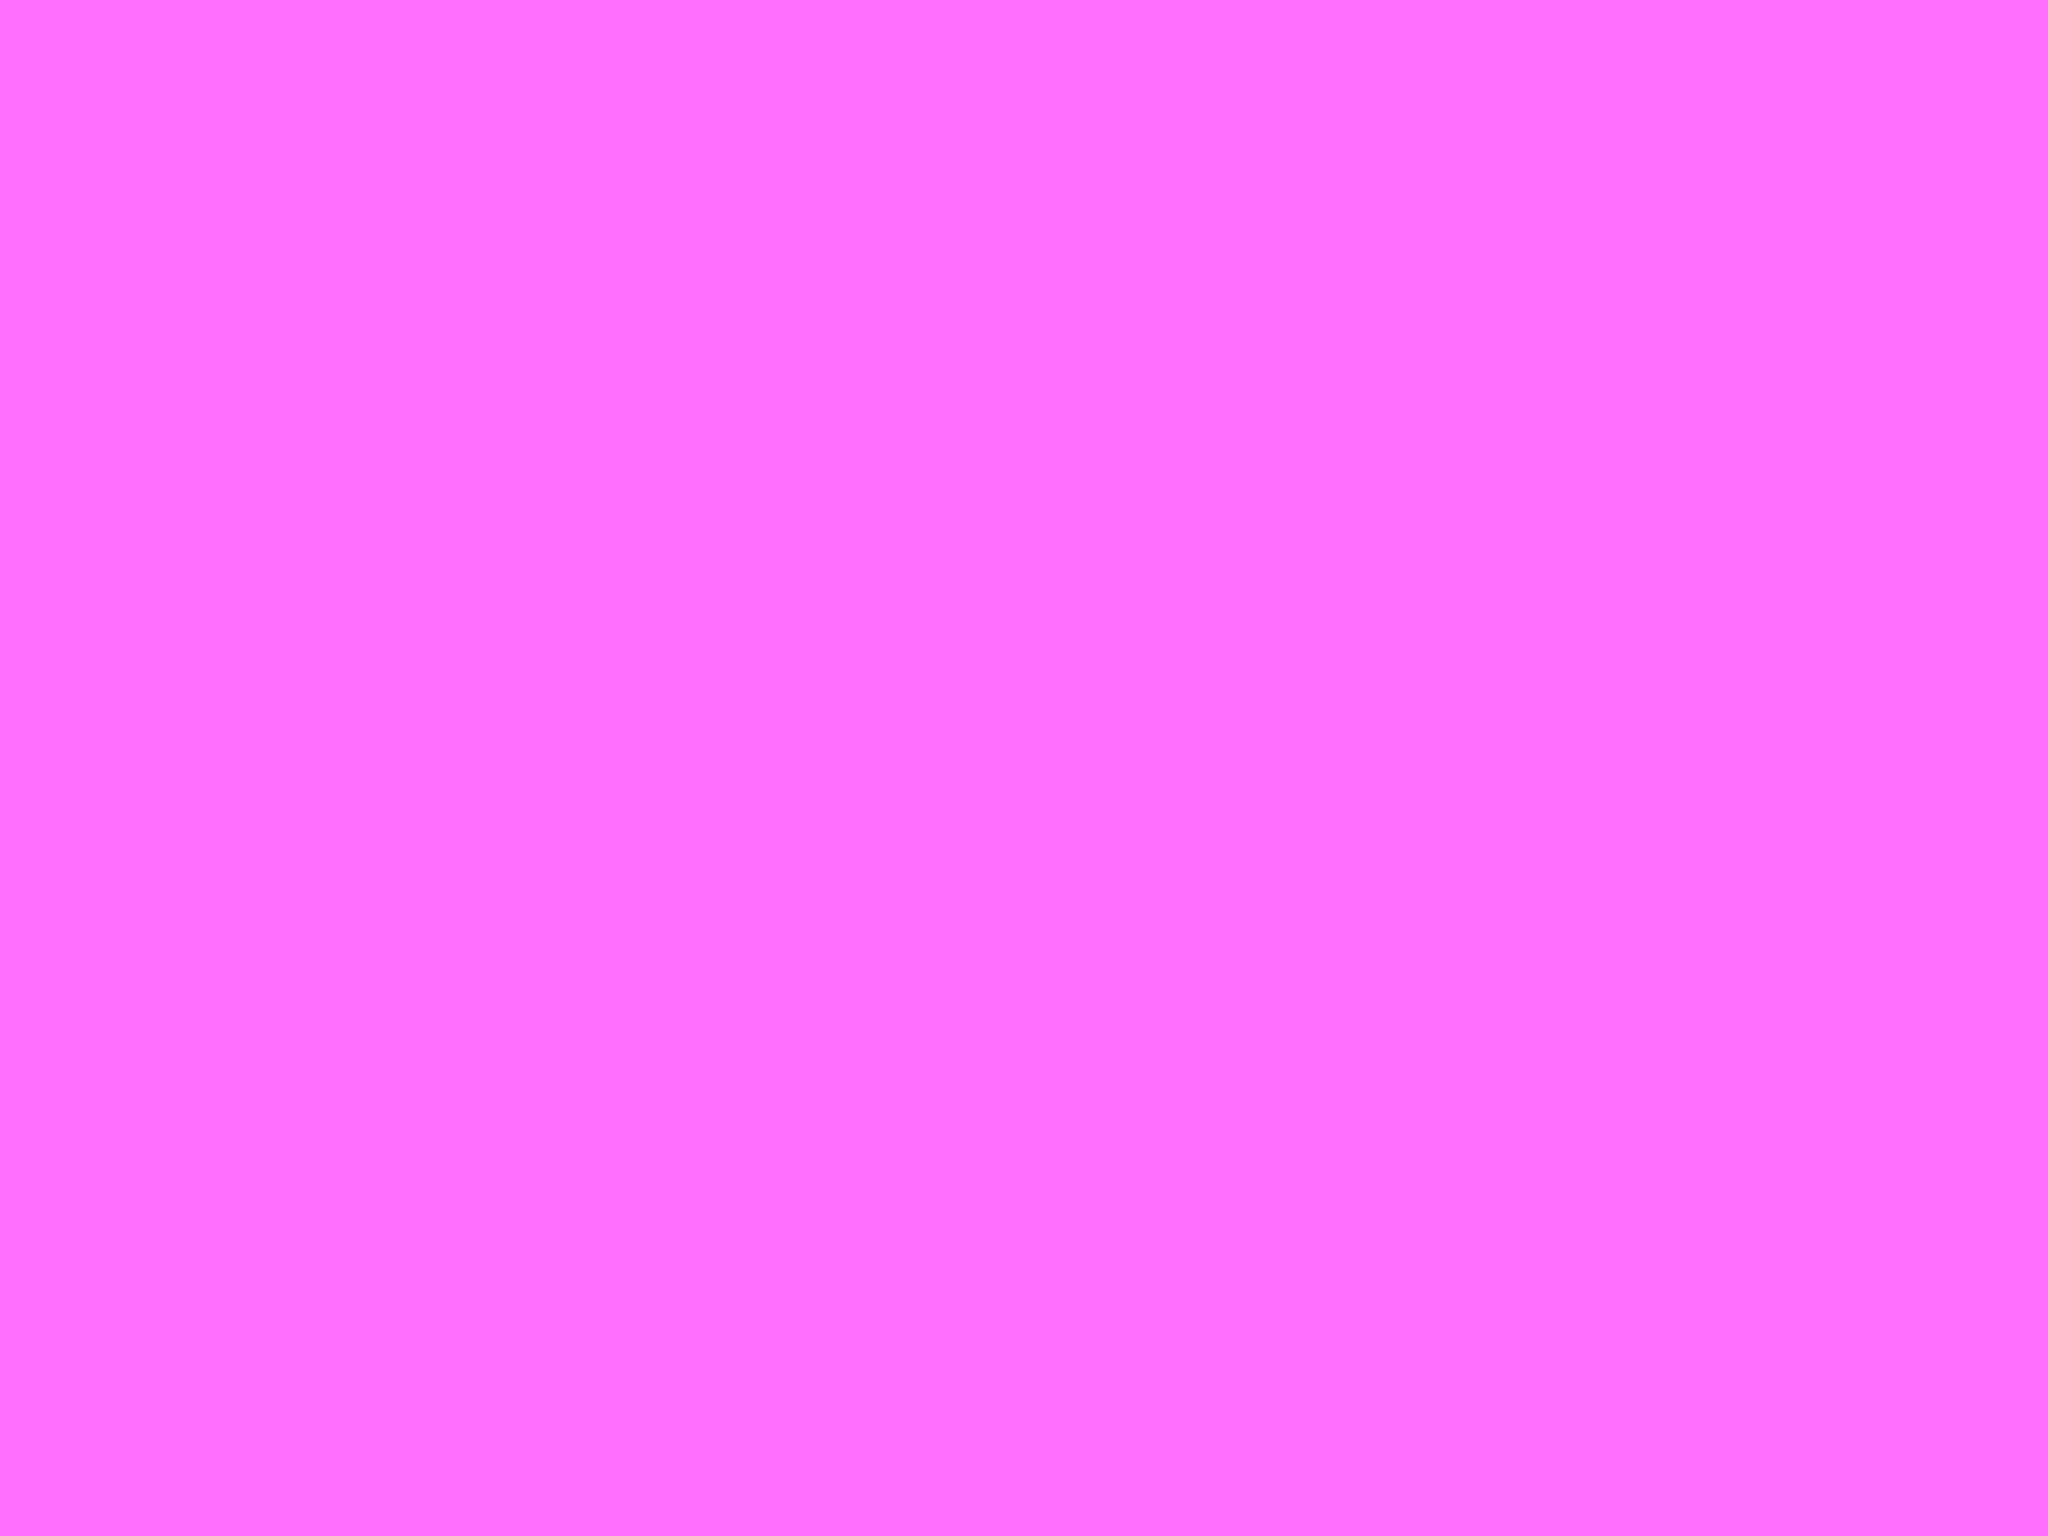 2048x1536 Shocking Pink Crayola Solid Color Background